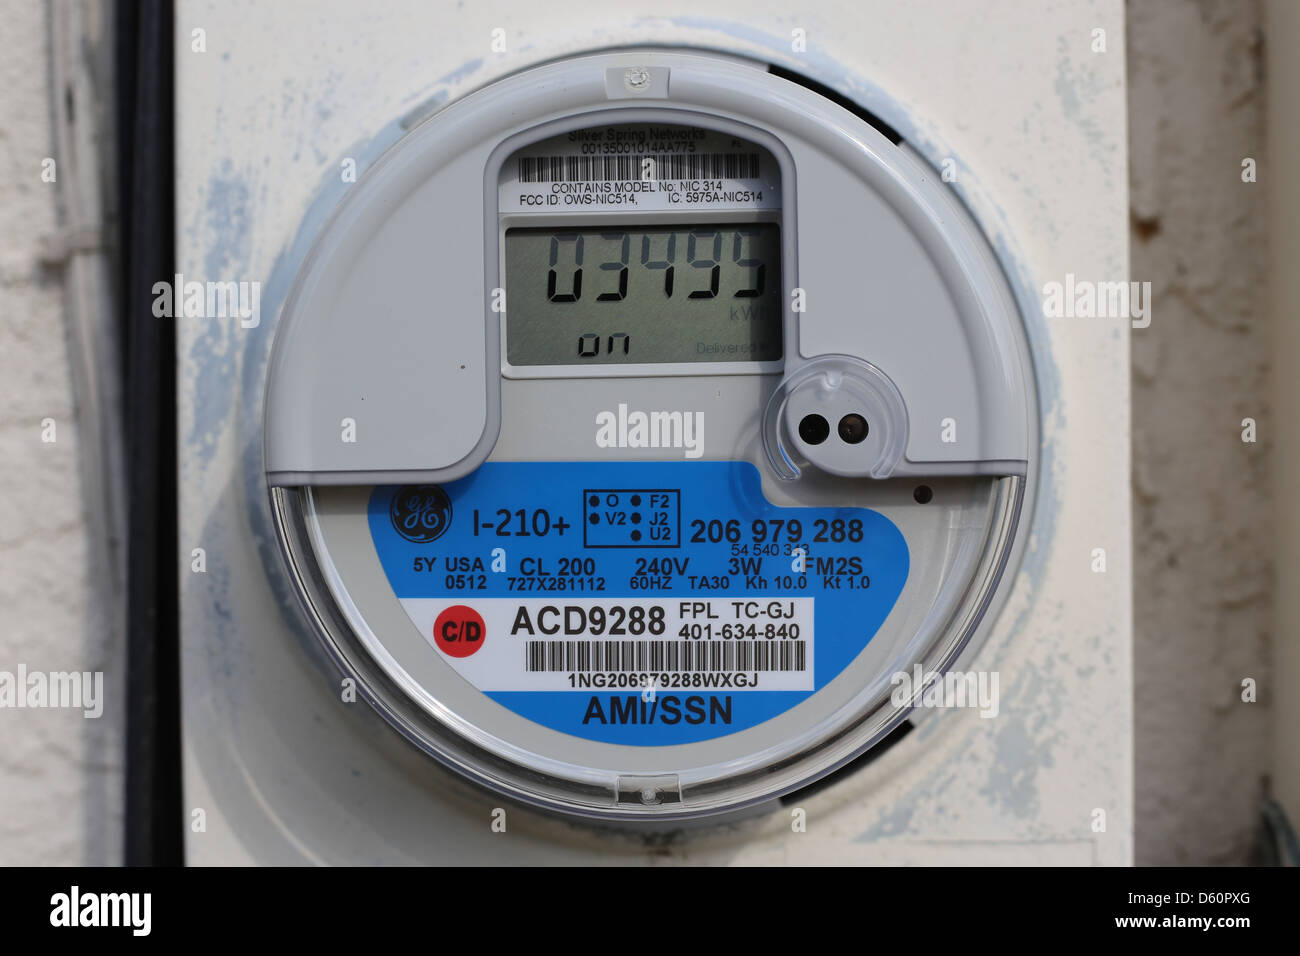 a new digital electric electricity power meter on the side of a house - Stock Image